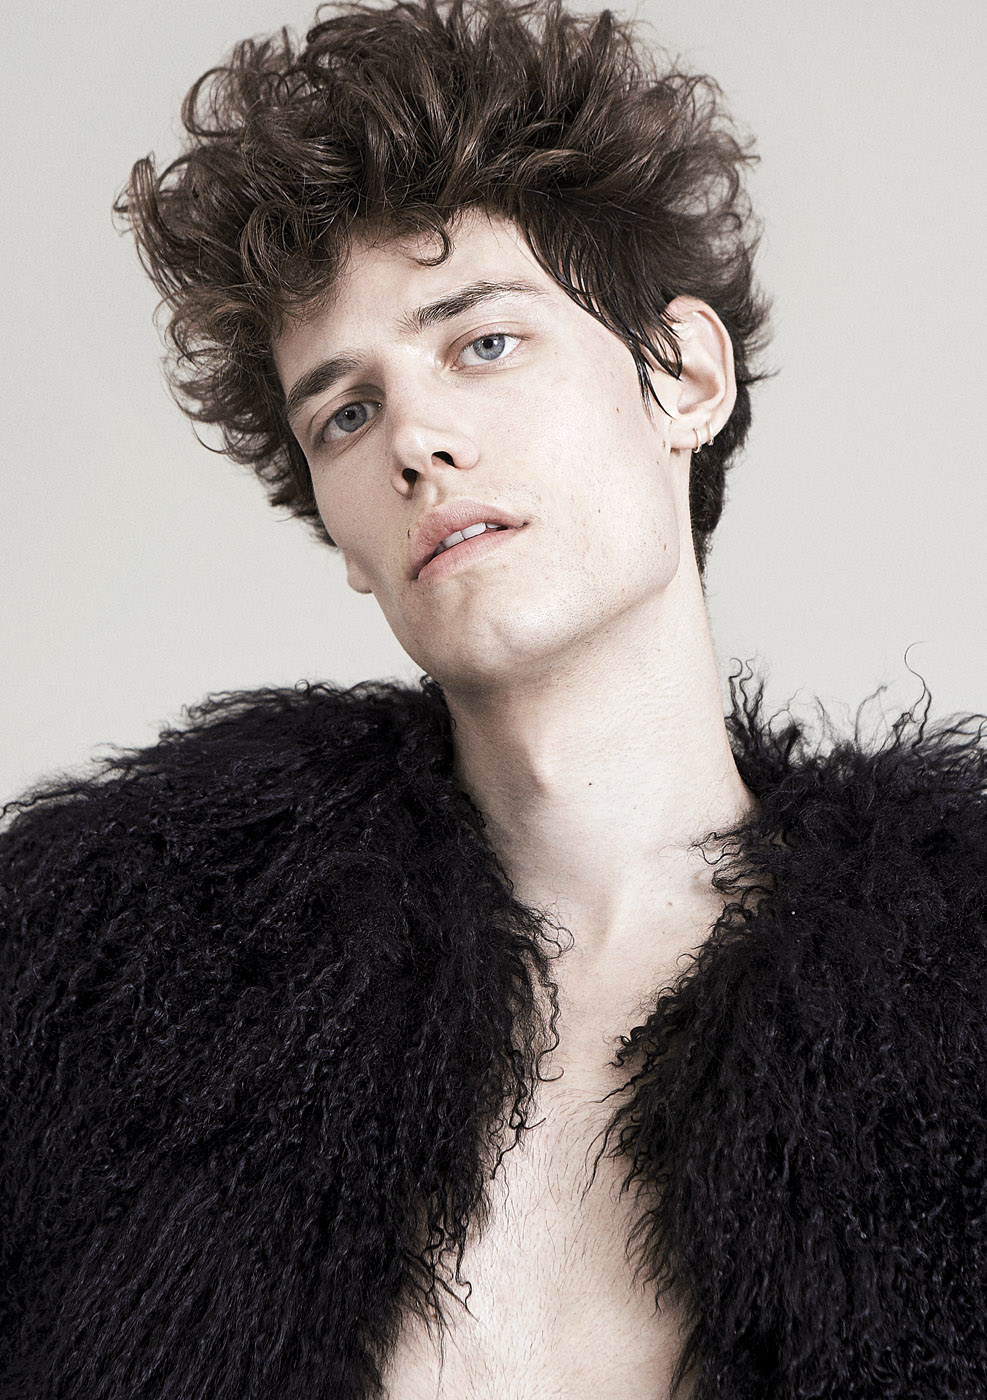 Florian by Harling & Darsell for CHASSEUR MAGAZINE